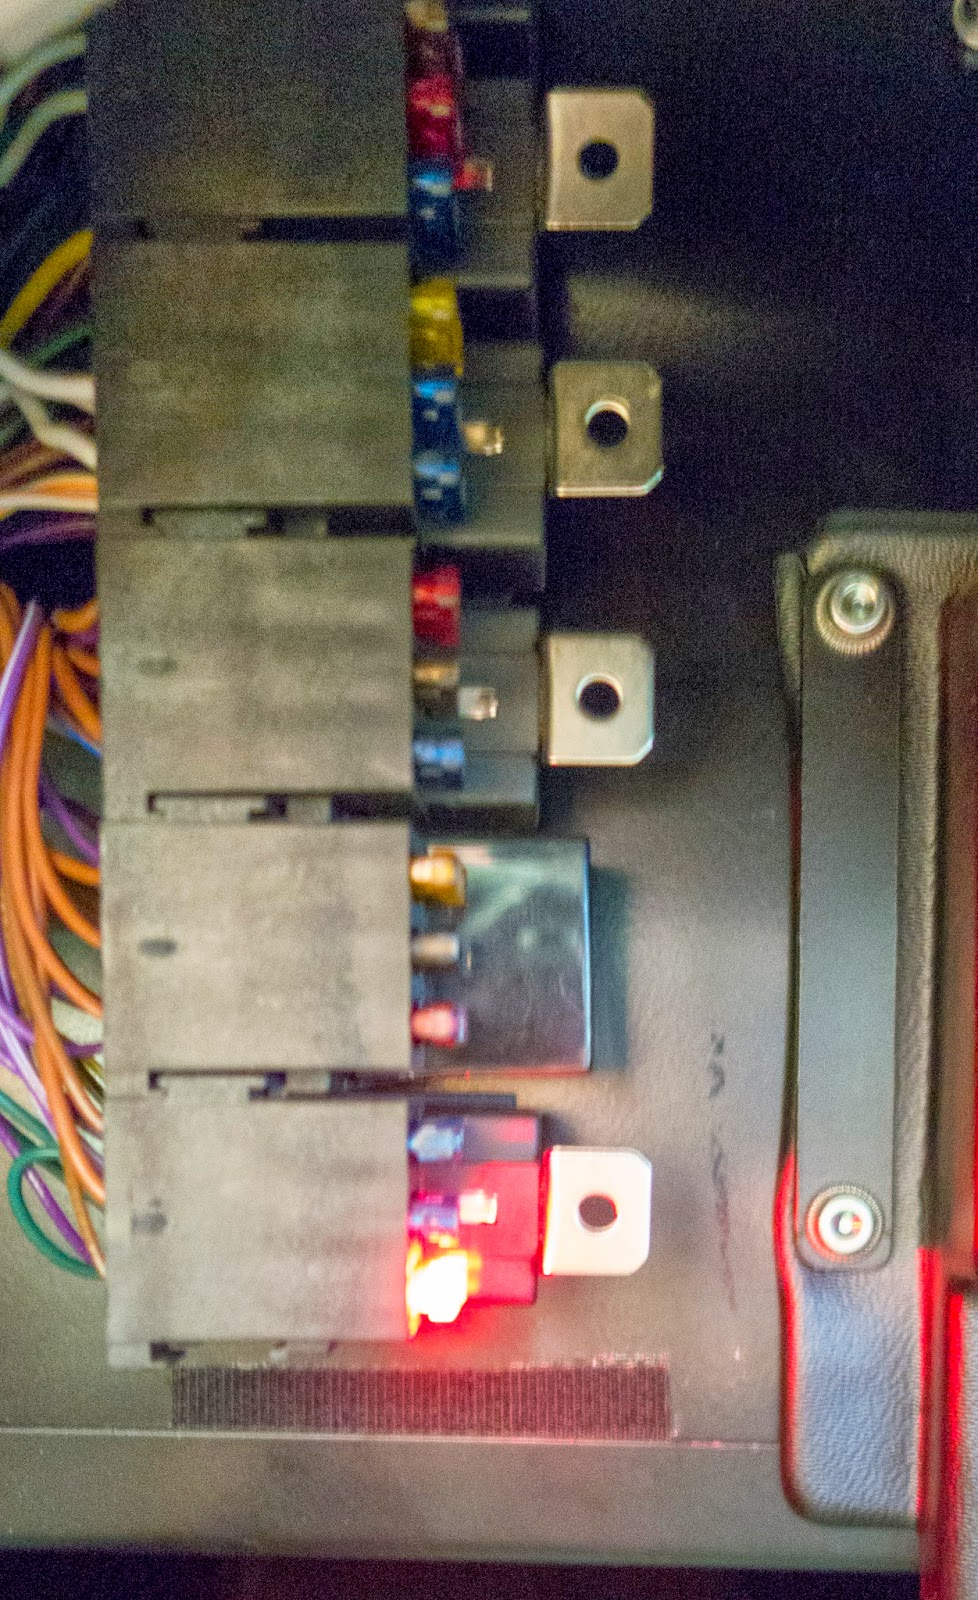 Blown 5 amp LED blade fuse illuminating fuse box.